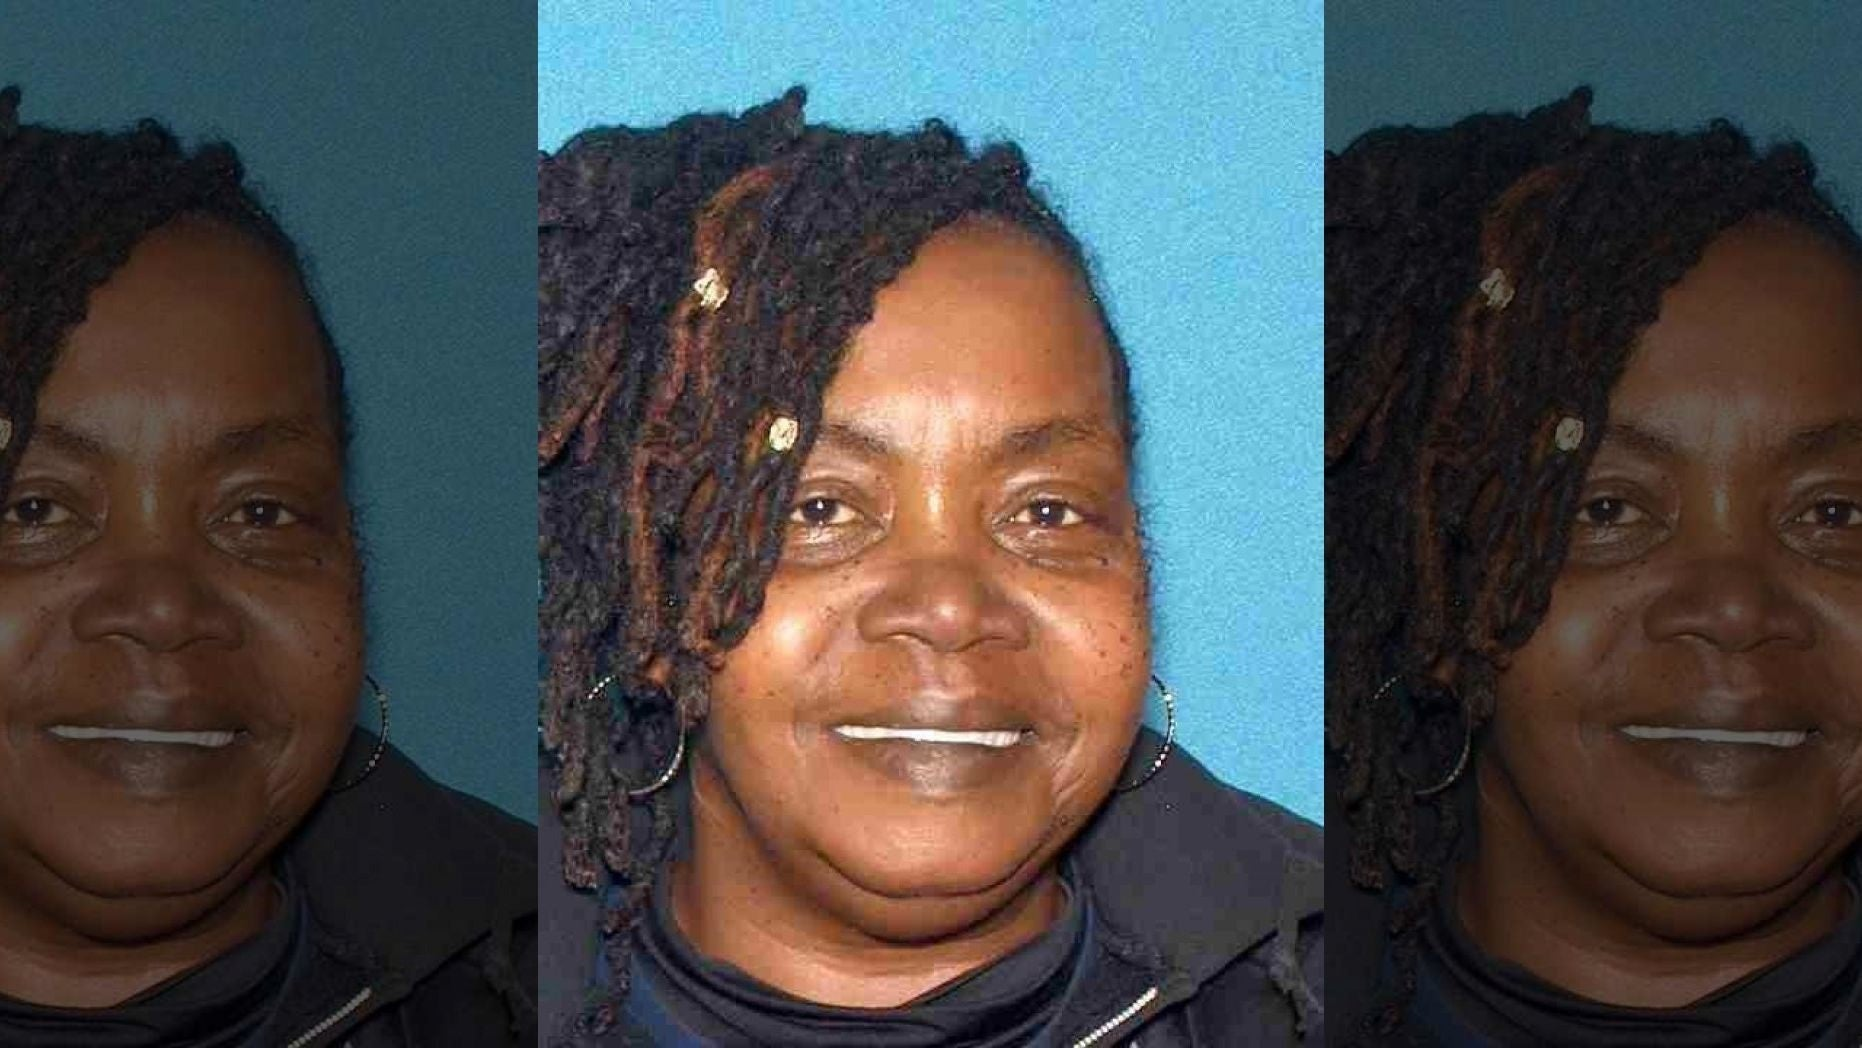 Lisa Byrd, 57, allegedly overdosed on drugs while driving children in New Jersey on Wednesday, police said.